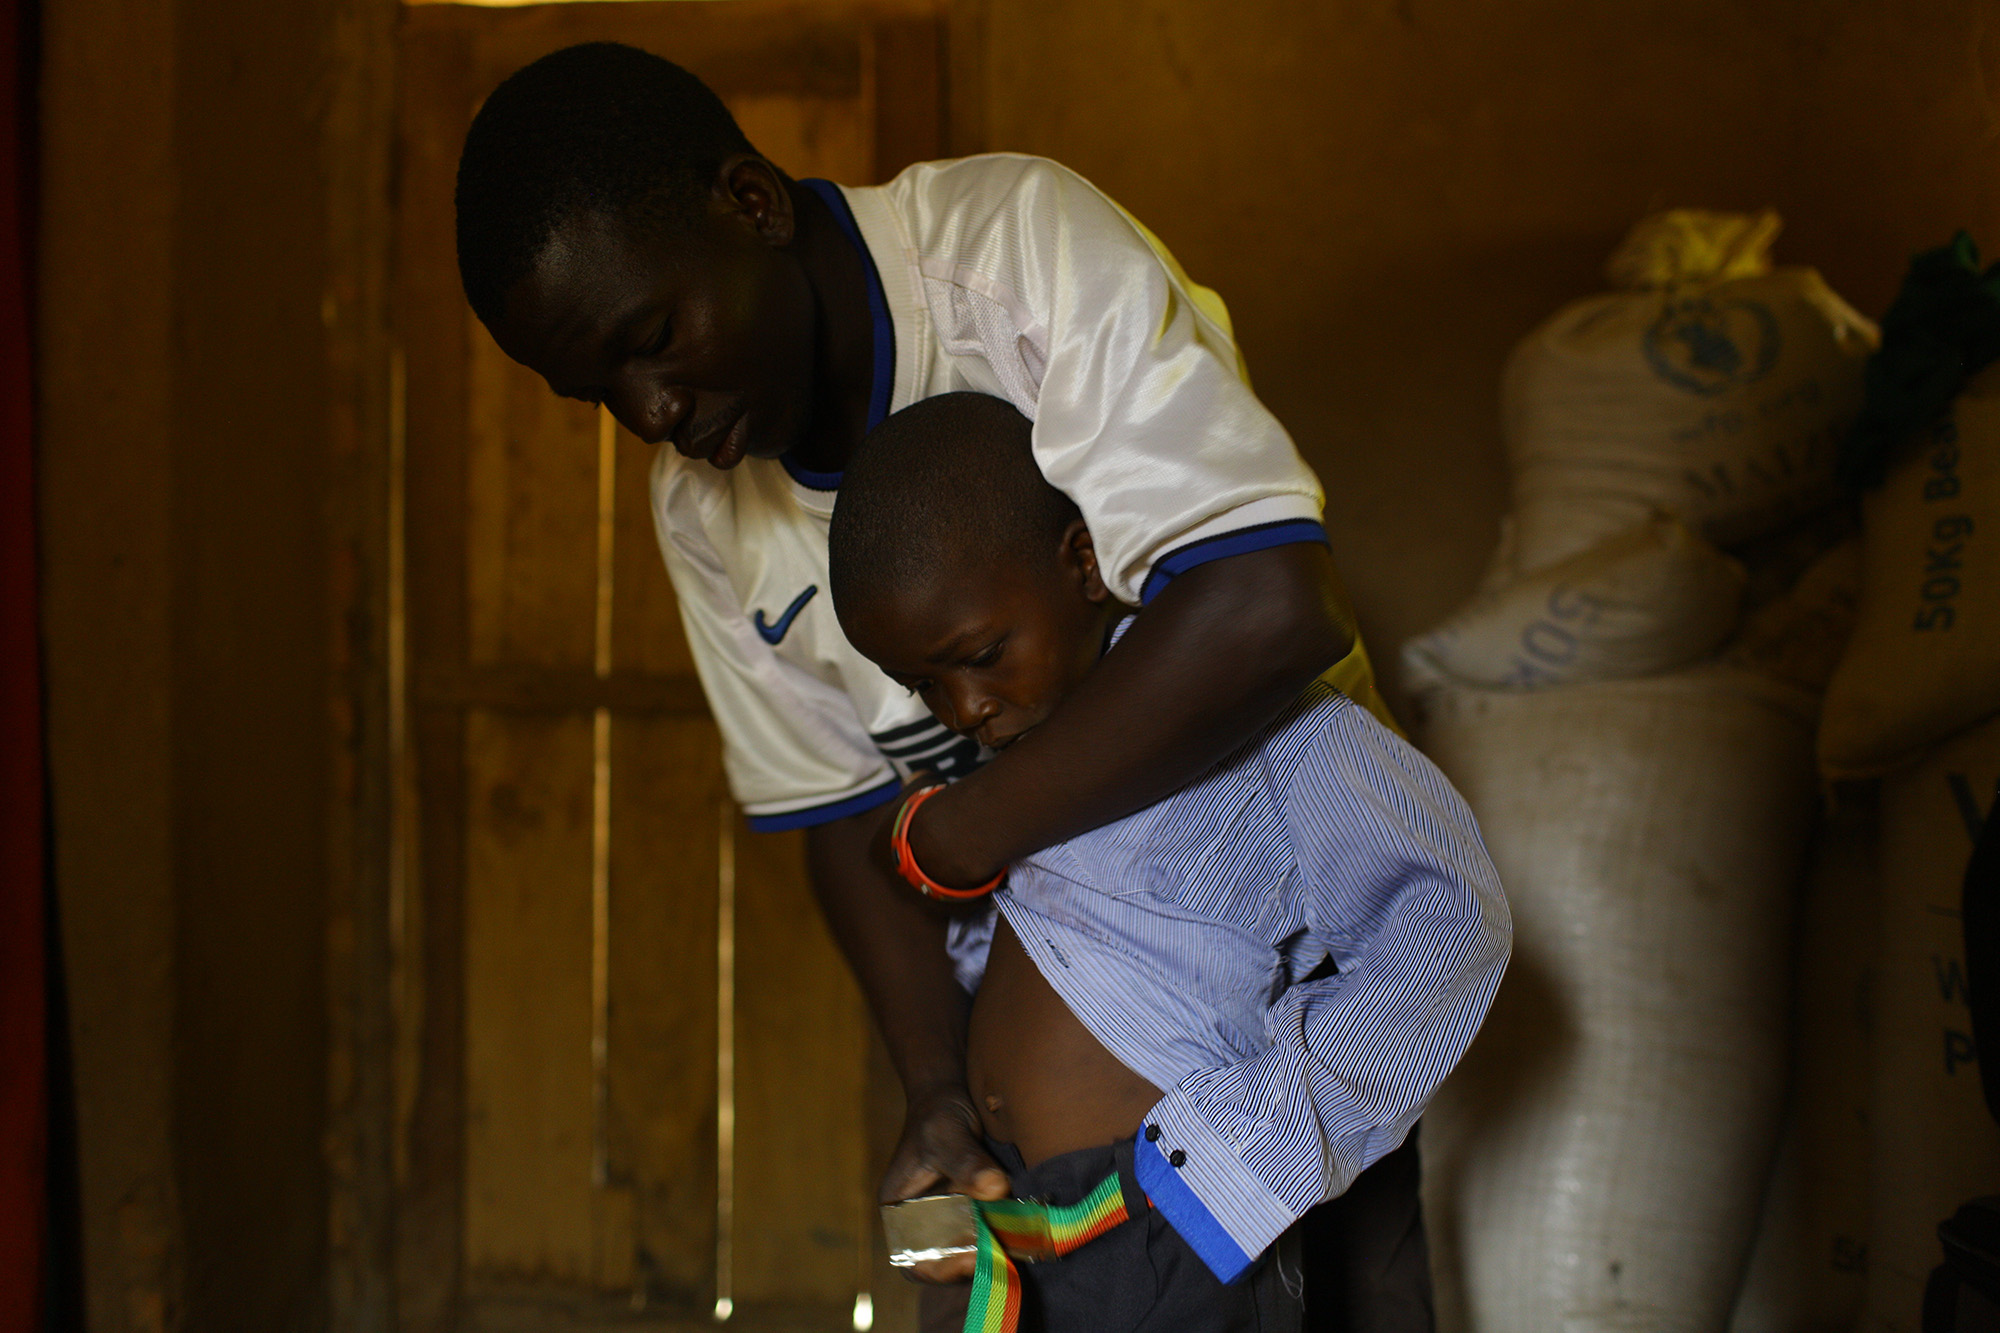 Wilfred Charles helps his son,Bright Wilfred, put on clothes.Photo by Morgana Wingard.